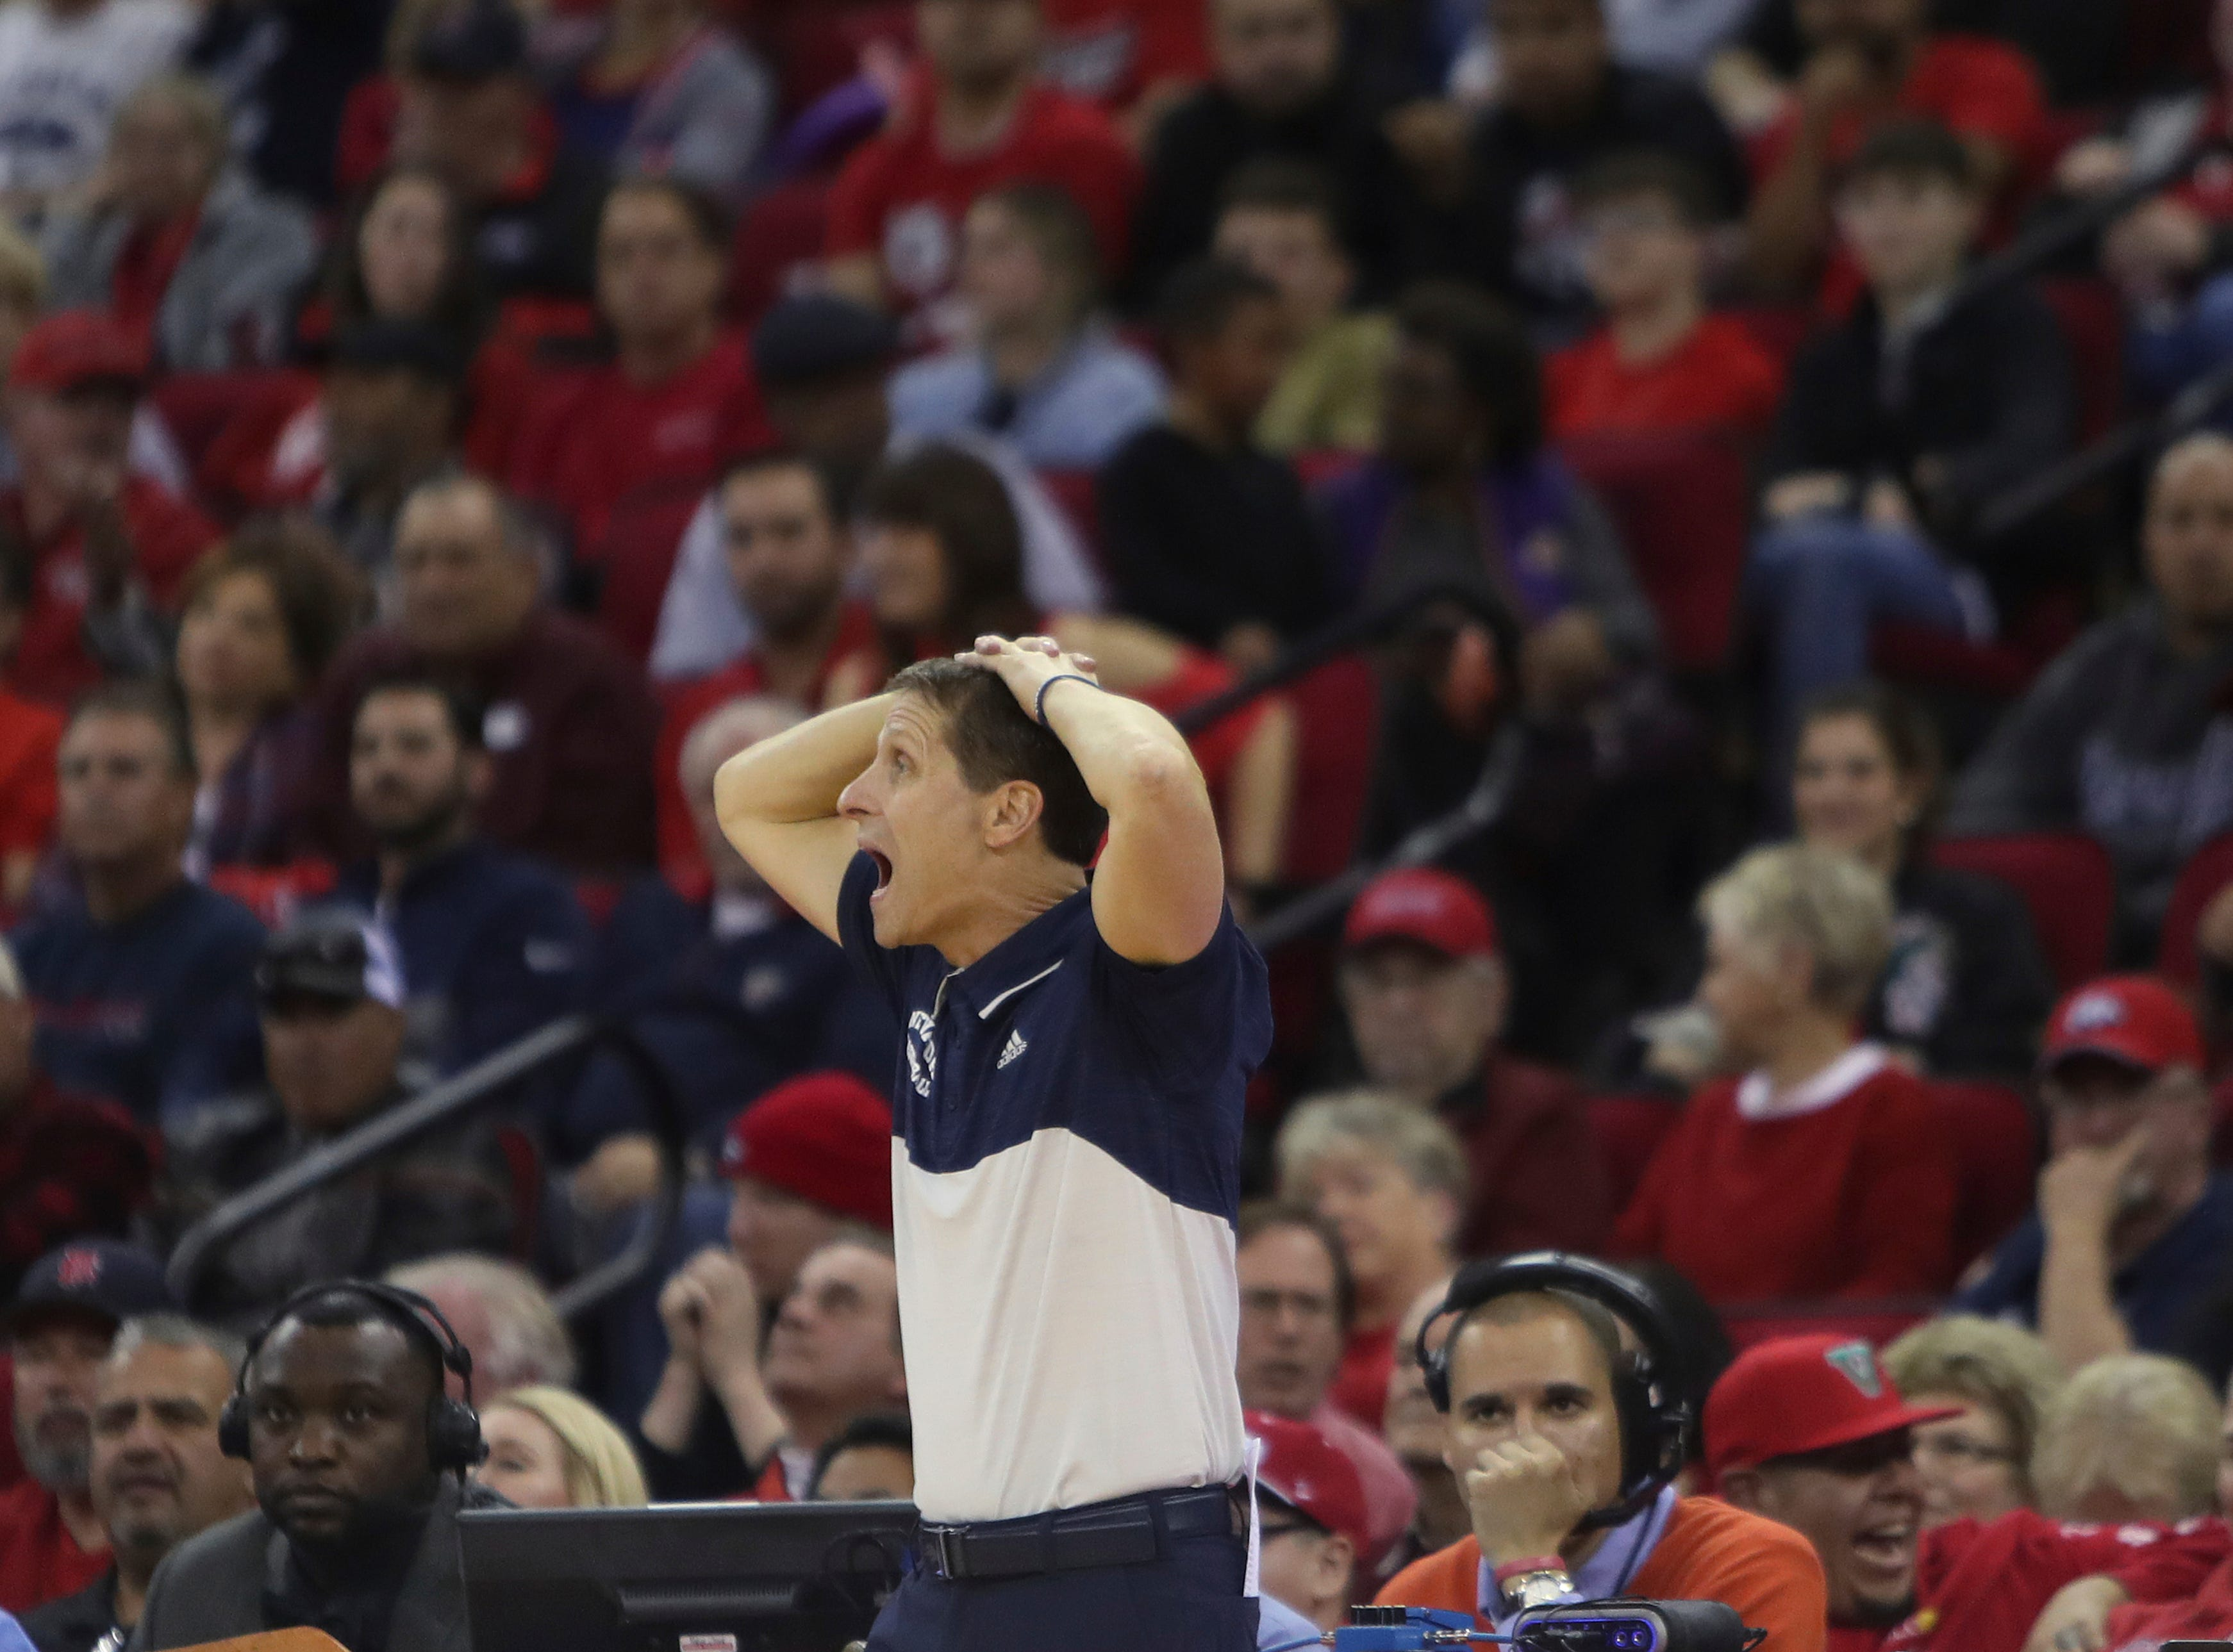 Nevada's coach Eric Musselman reacts to a call during the second half of an NCAA college basketball game against Fresno State in Fresno, Calif., Saturday, Jan. 12, 2019. (AP Photo/Gary Kazanjian)